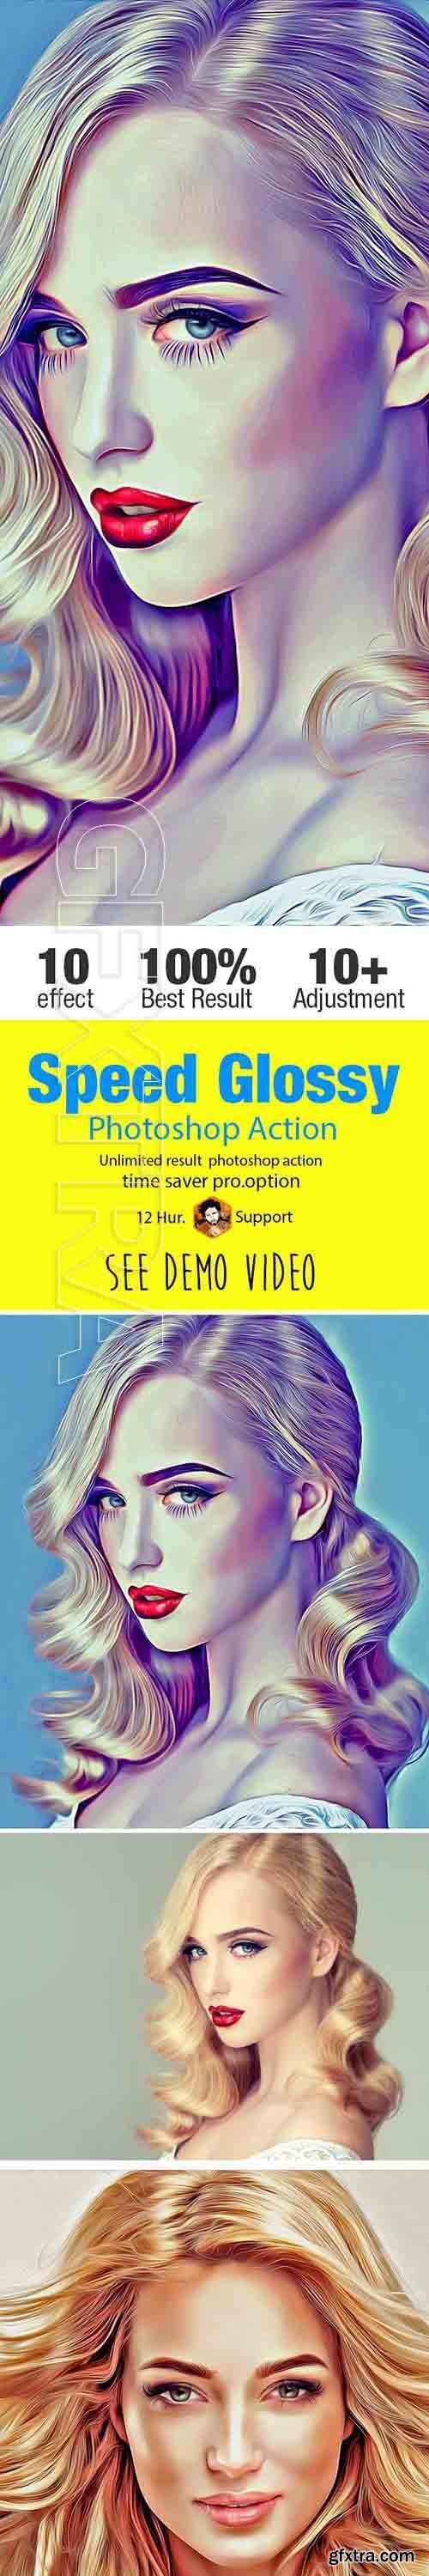 GraphicRiver - Speed Glossy Art Action 21140064